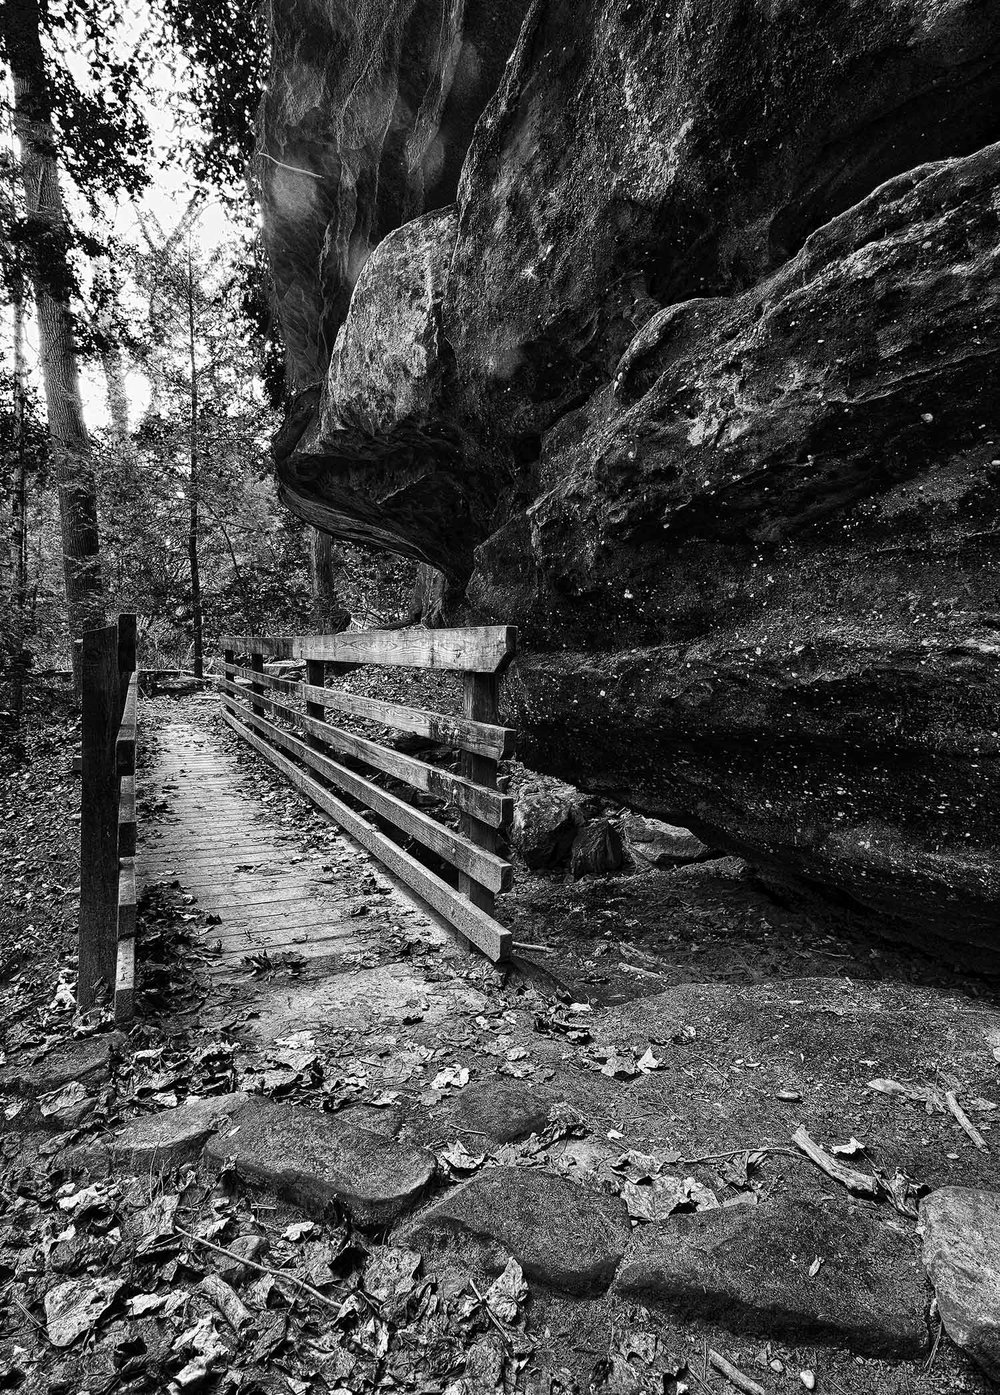 Footbridge - Virginia Kendall Ledges, Cuyahoga Valley National Park